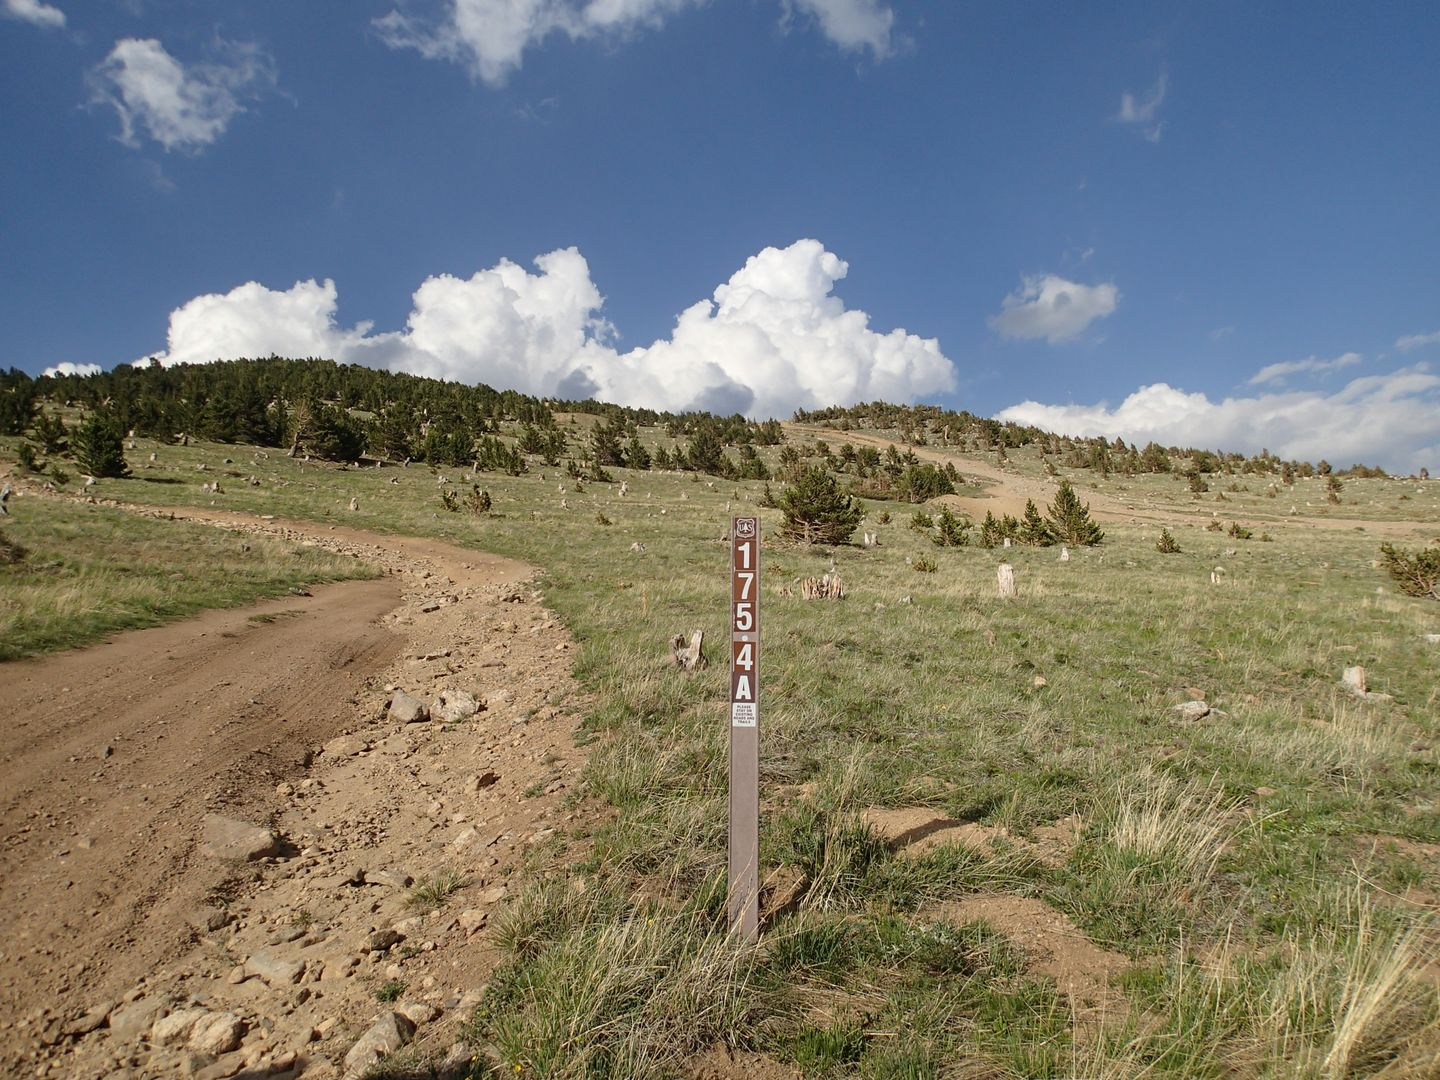 Yankee Hill - The Actual Hill - Waypoint 6: End or Start 175.4a